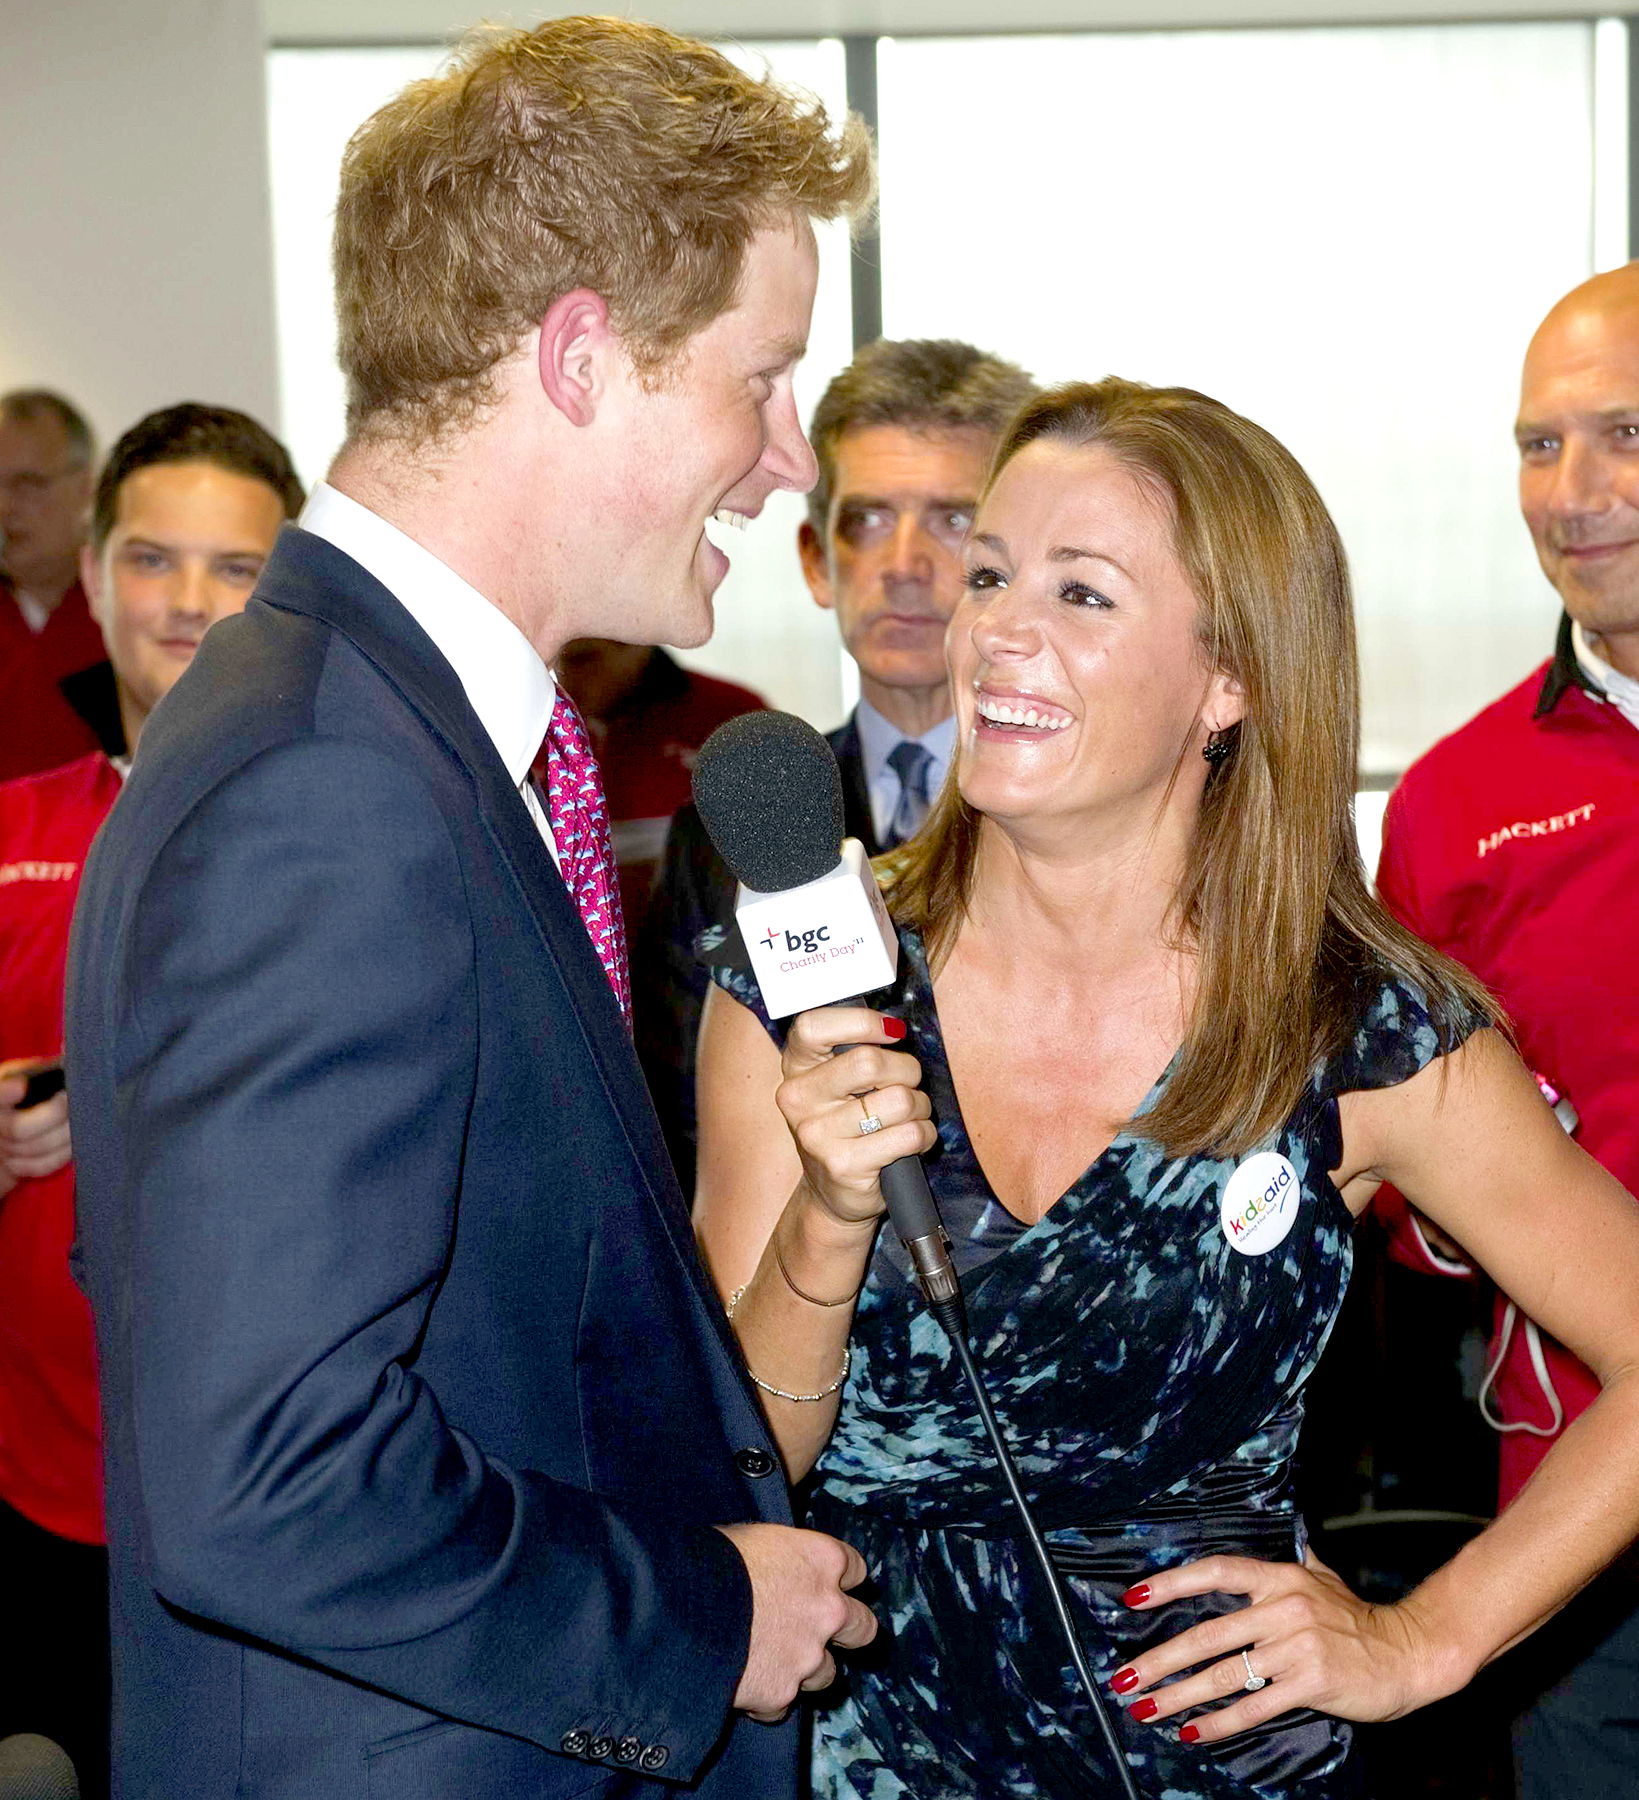 Britain's Prince Harry talks to British TV and radio presenter Natalie Pinkham on the trading floor as he attends BGC Partners' Charity Day in London, on September 12, 2011.